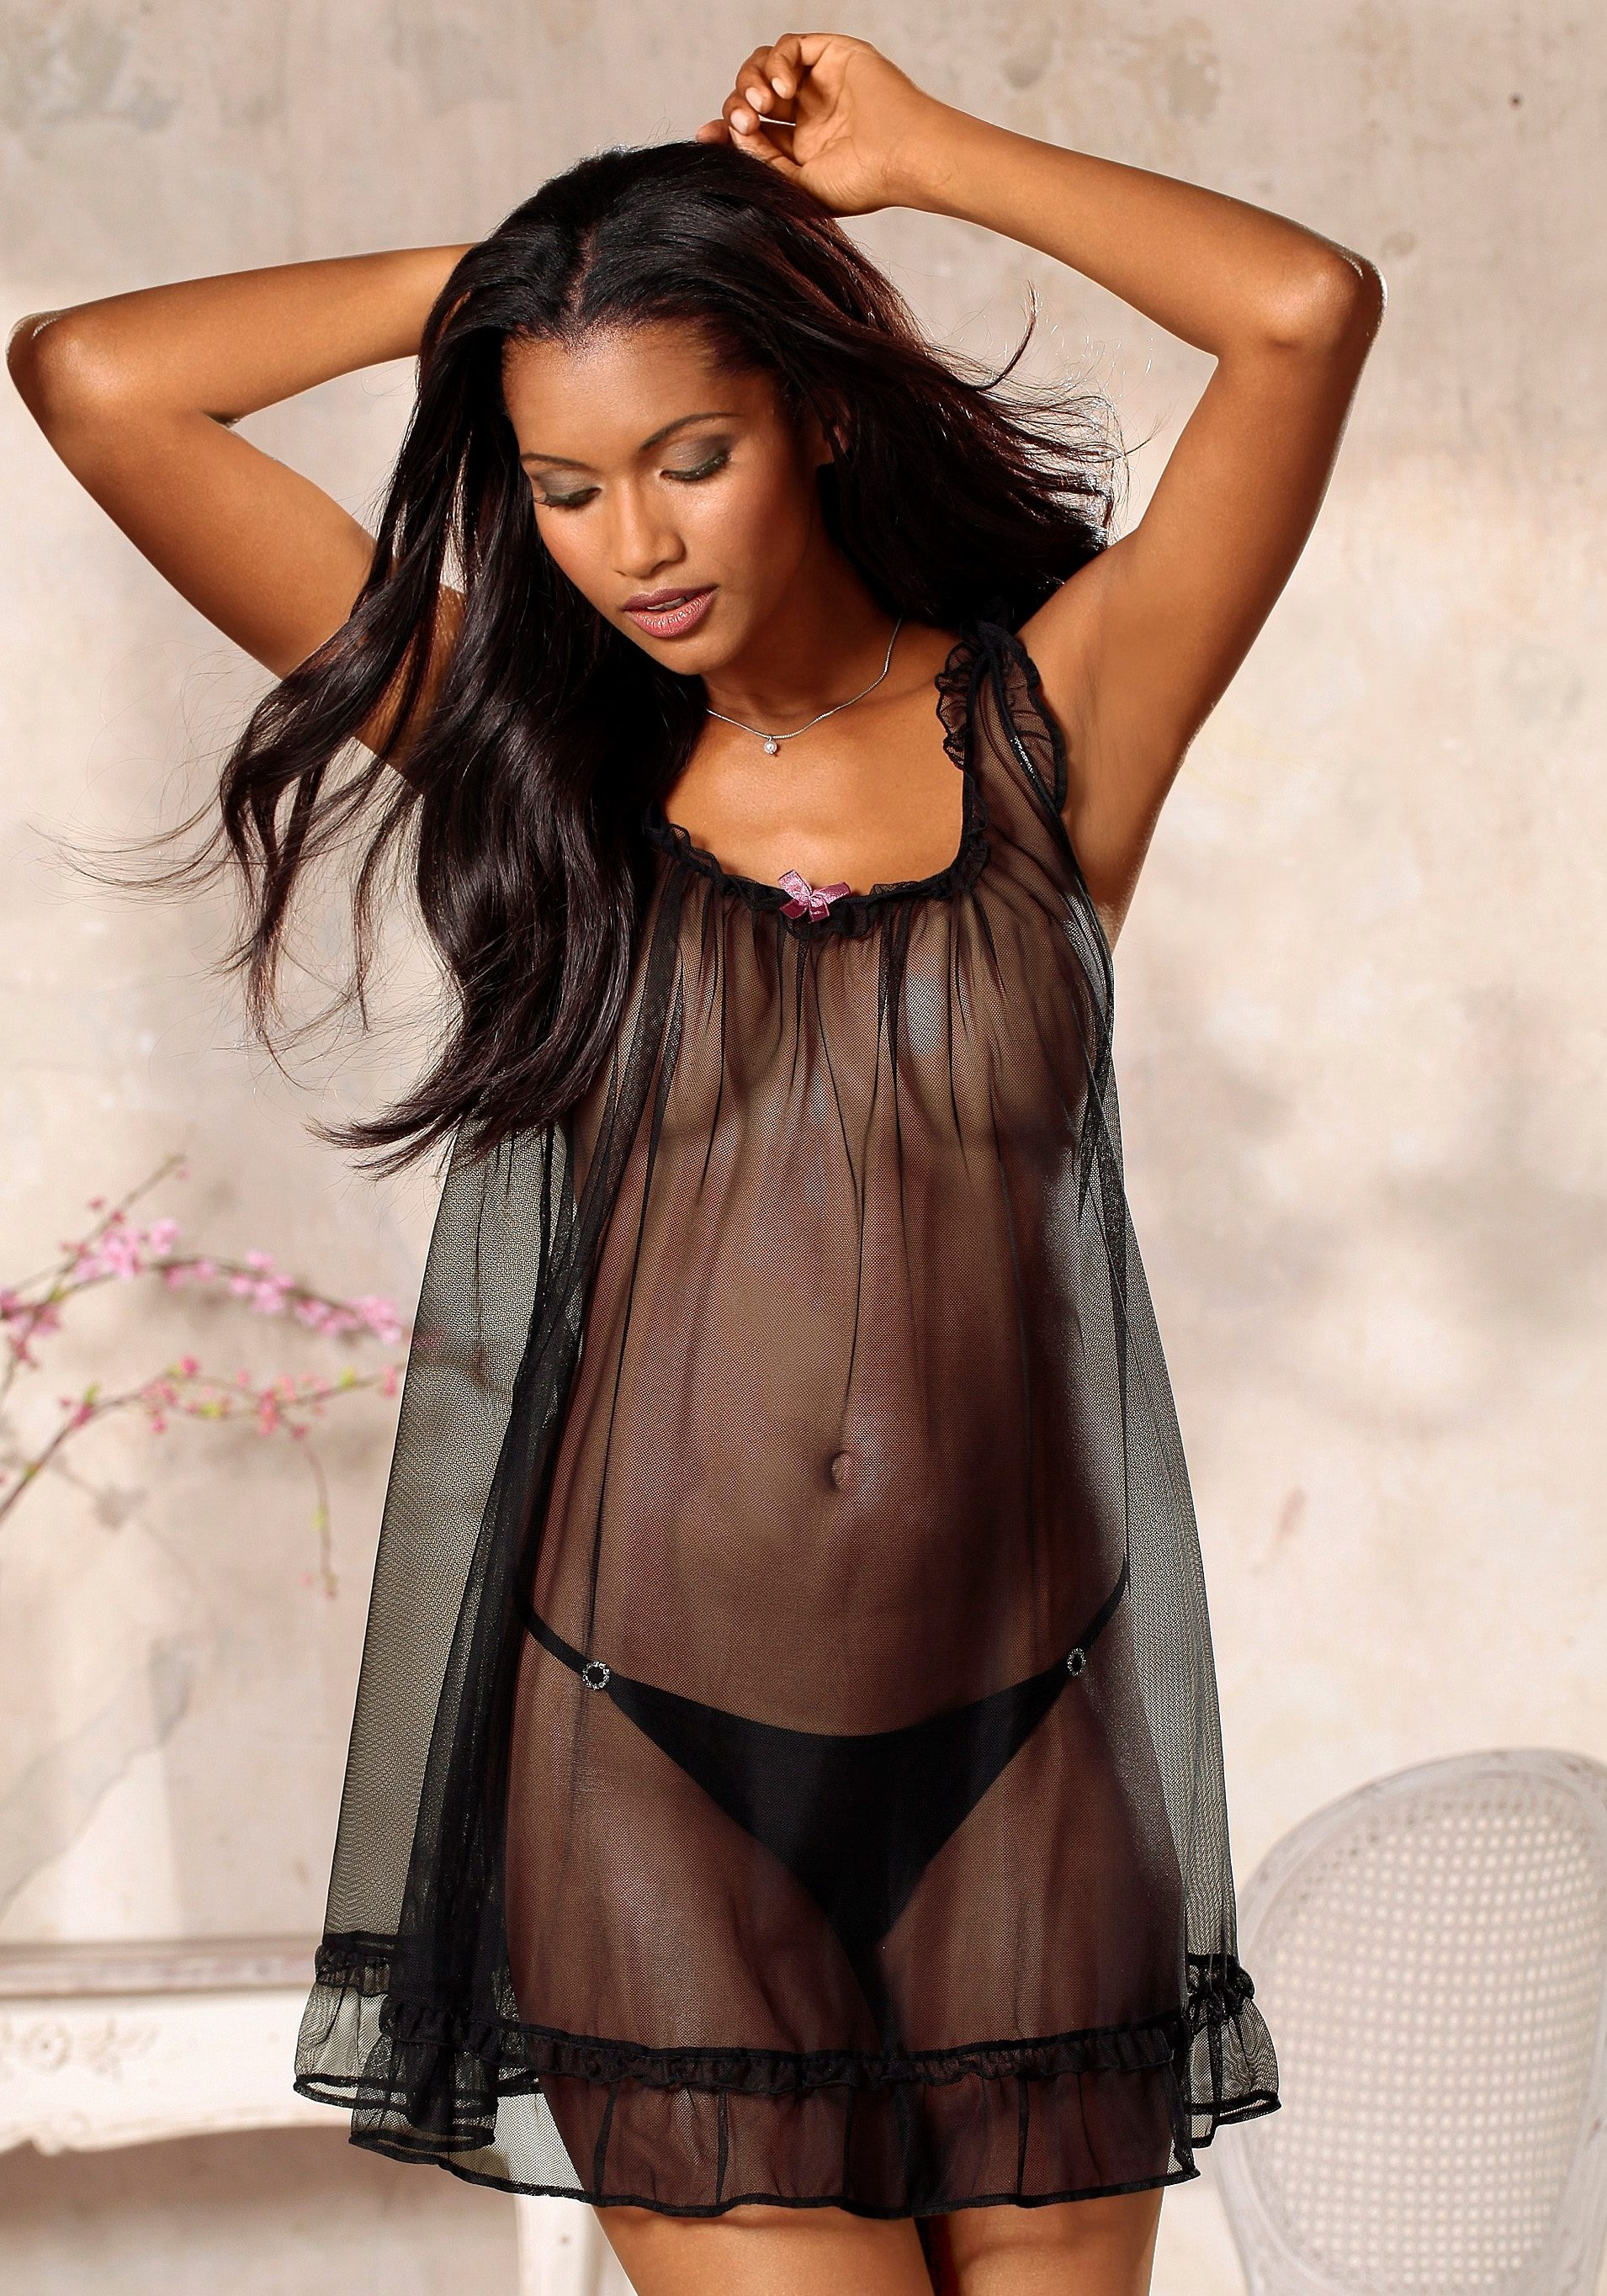 LASCANA Negligee in transparenter Babydoll-Optik